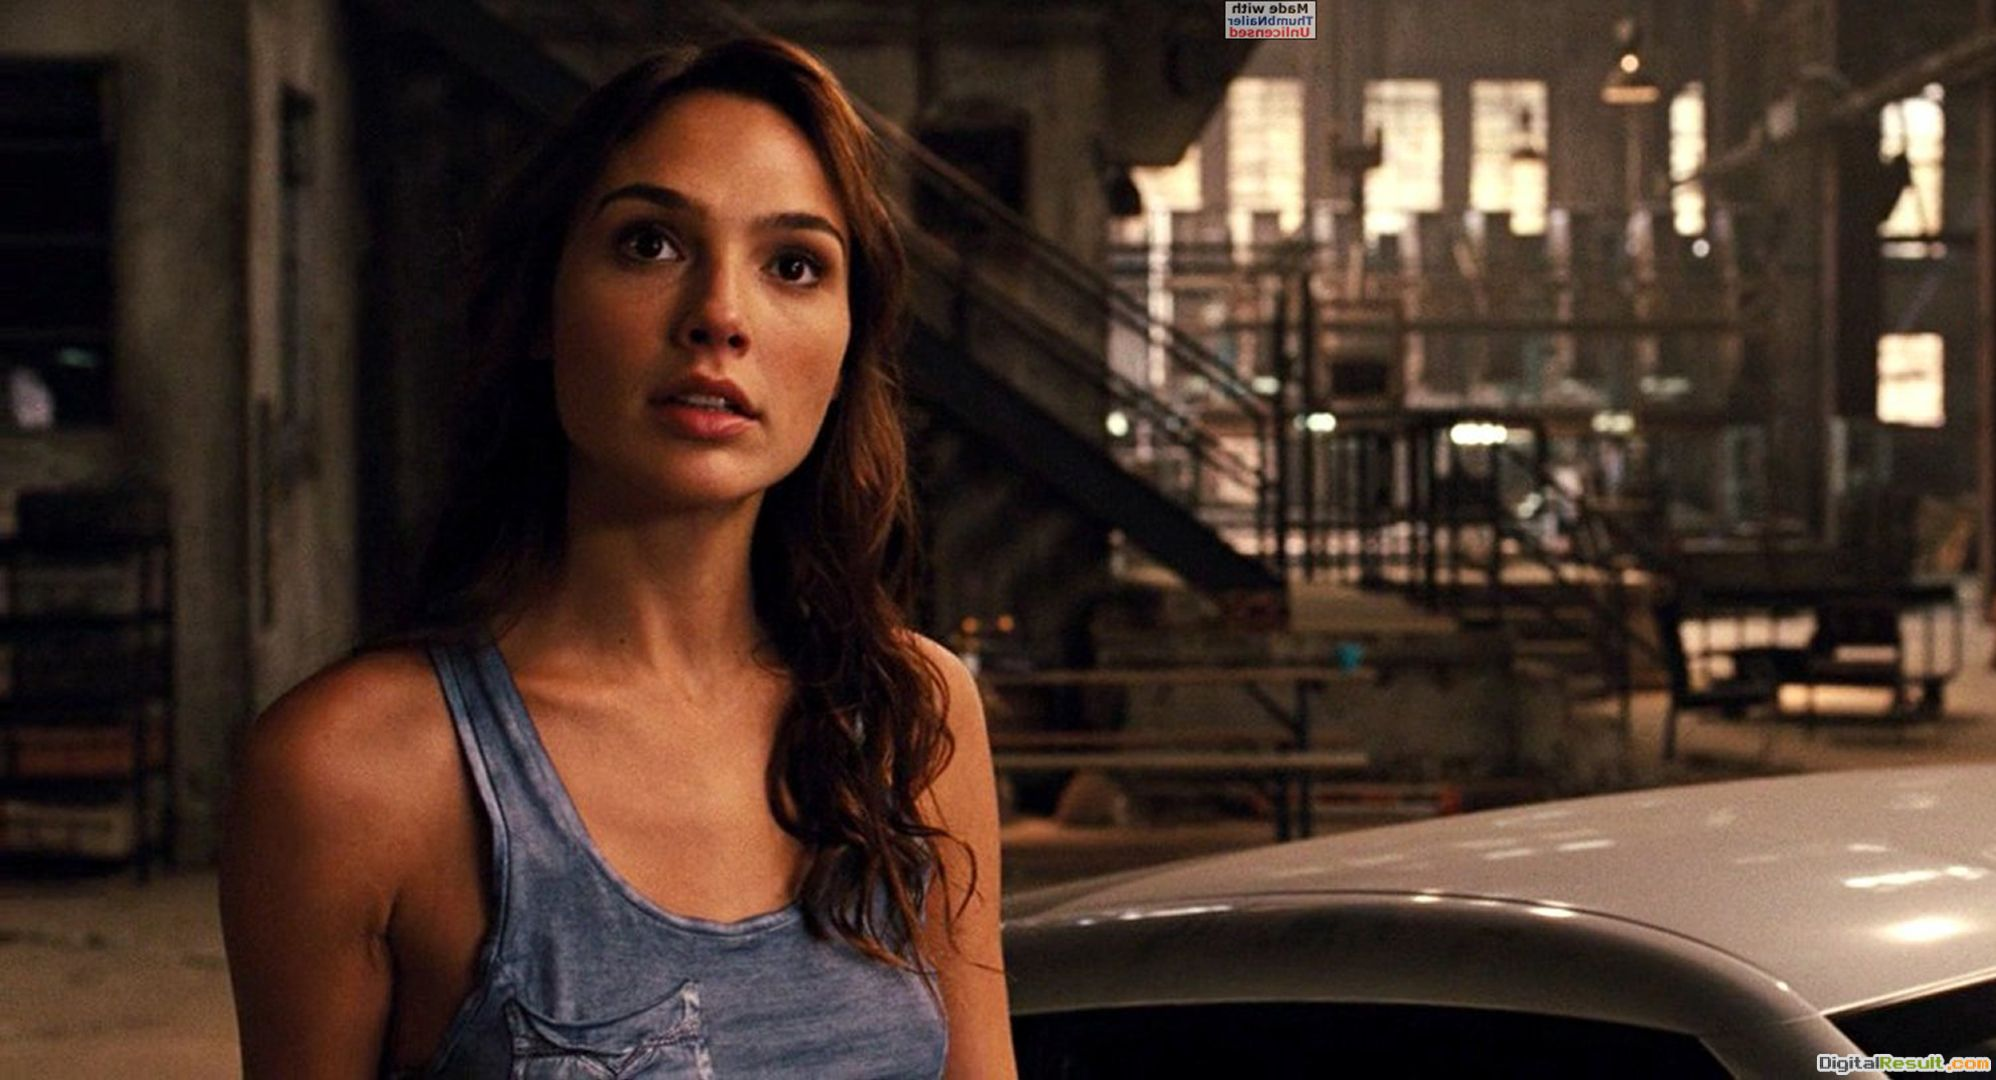 Gal Gadot Cute Wallpaper Hd Widescreen 1080p Background Pictures to 1054